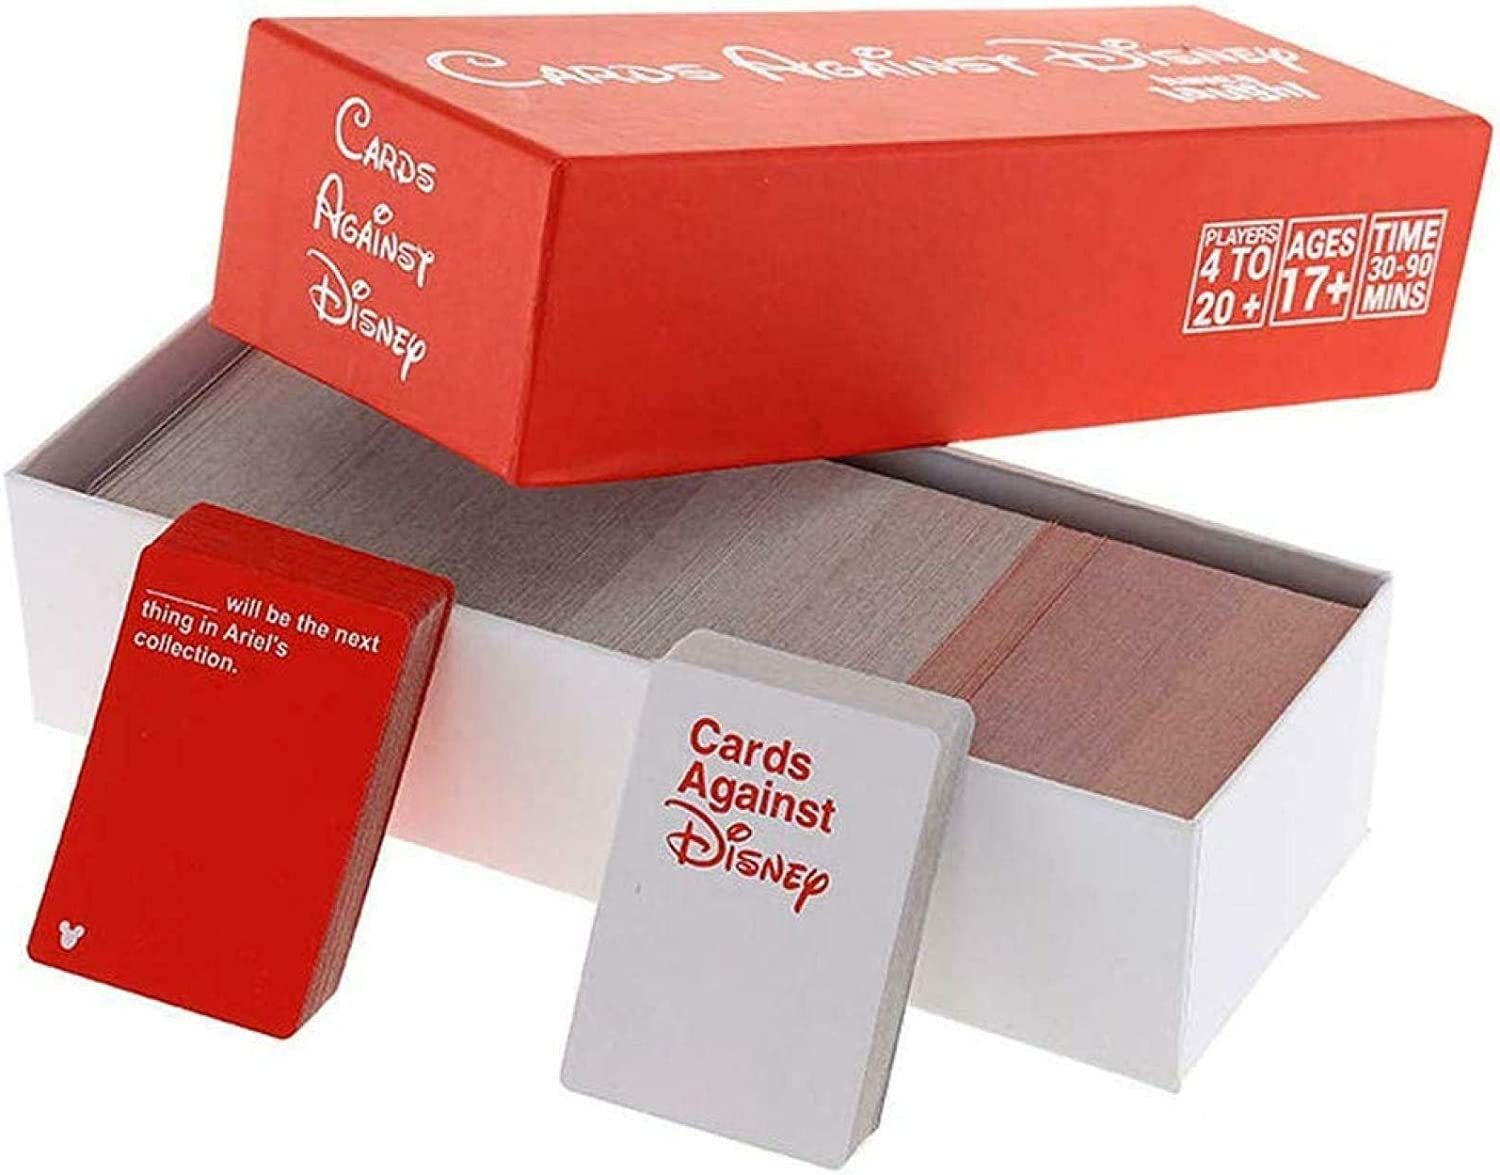 Cards Against Disney 828 Cards Original RED Pack Limited Edition